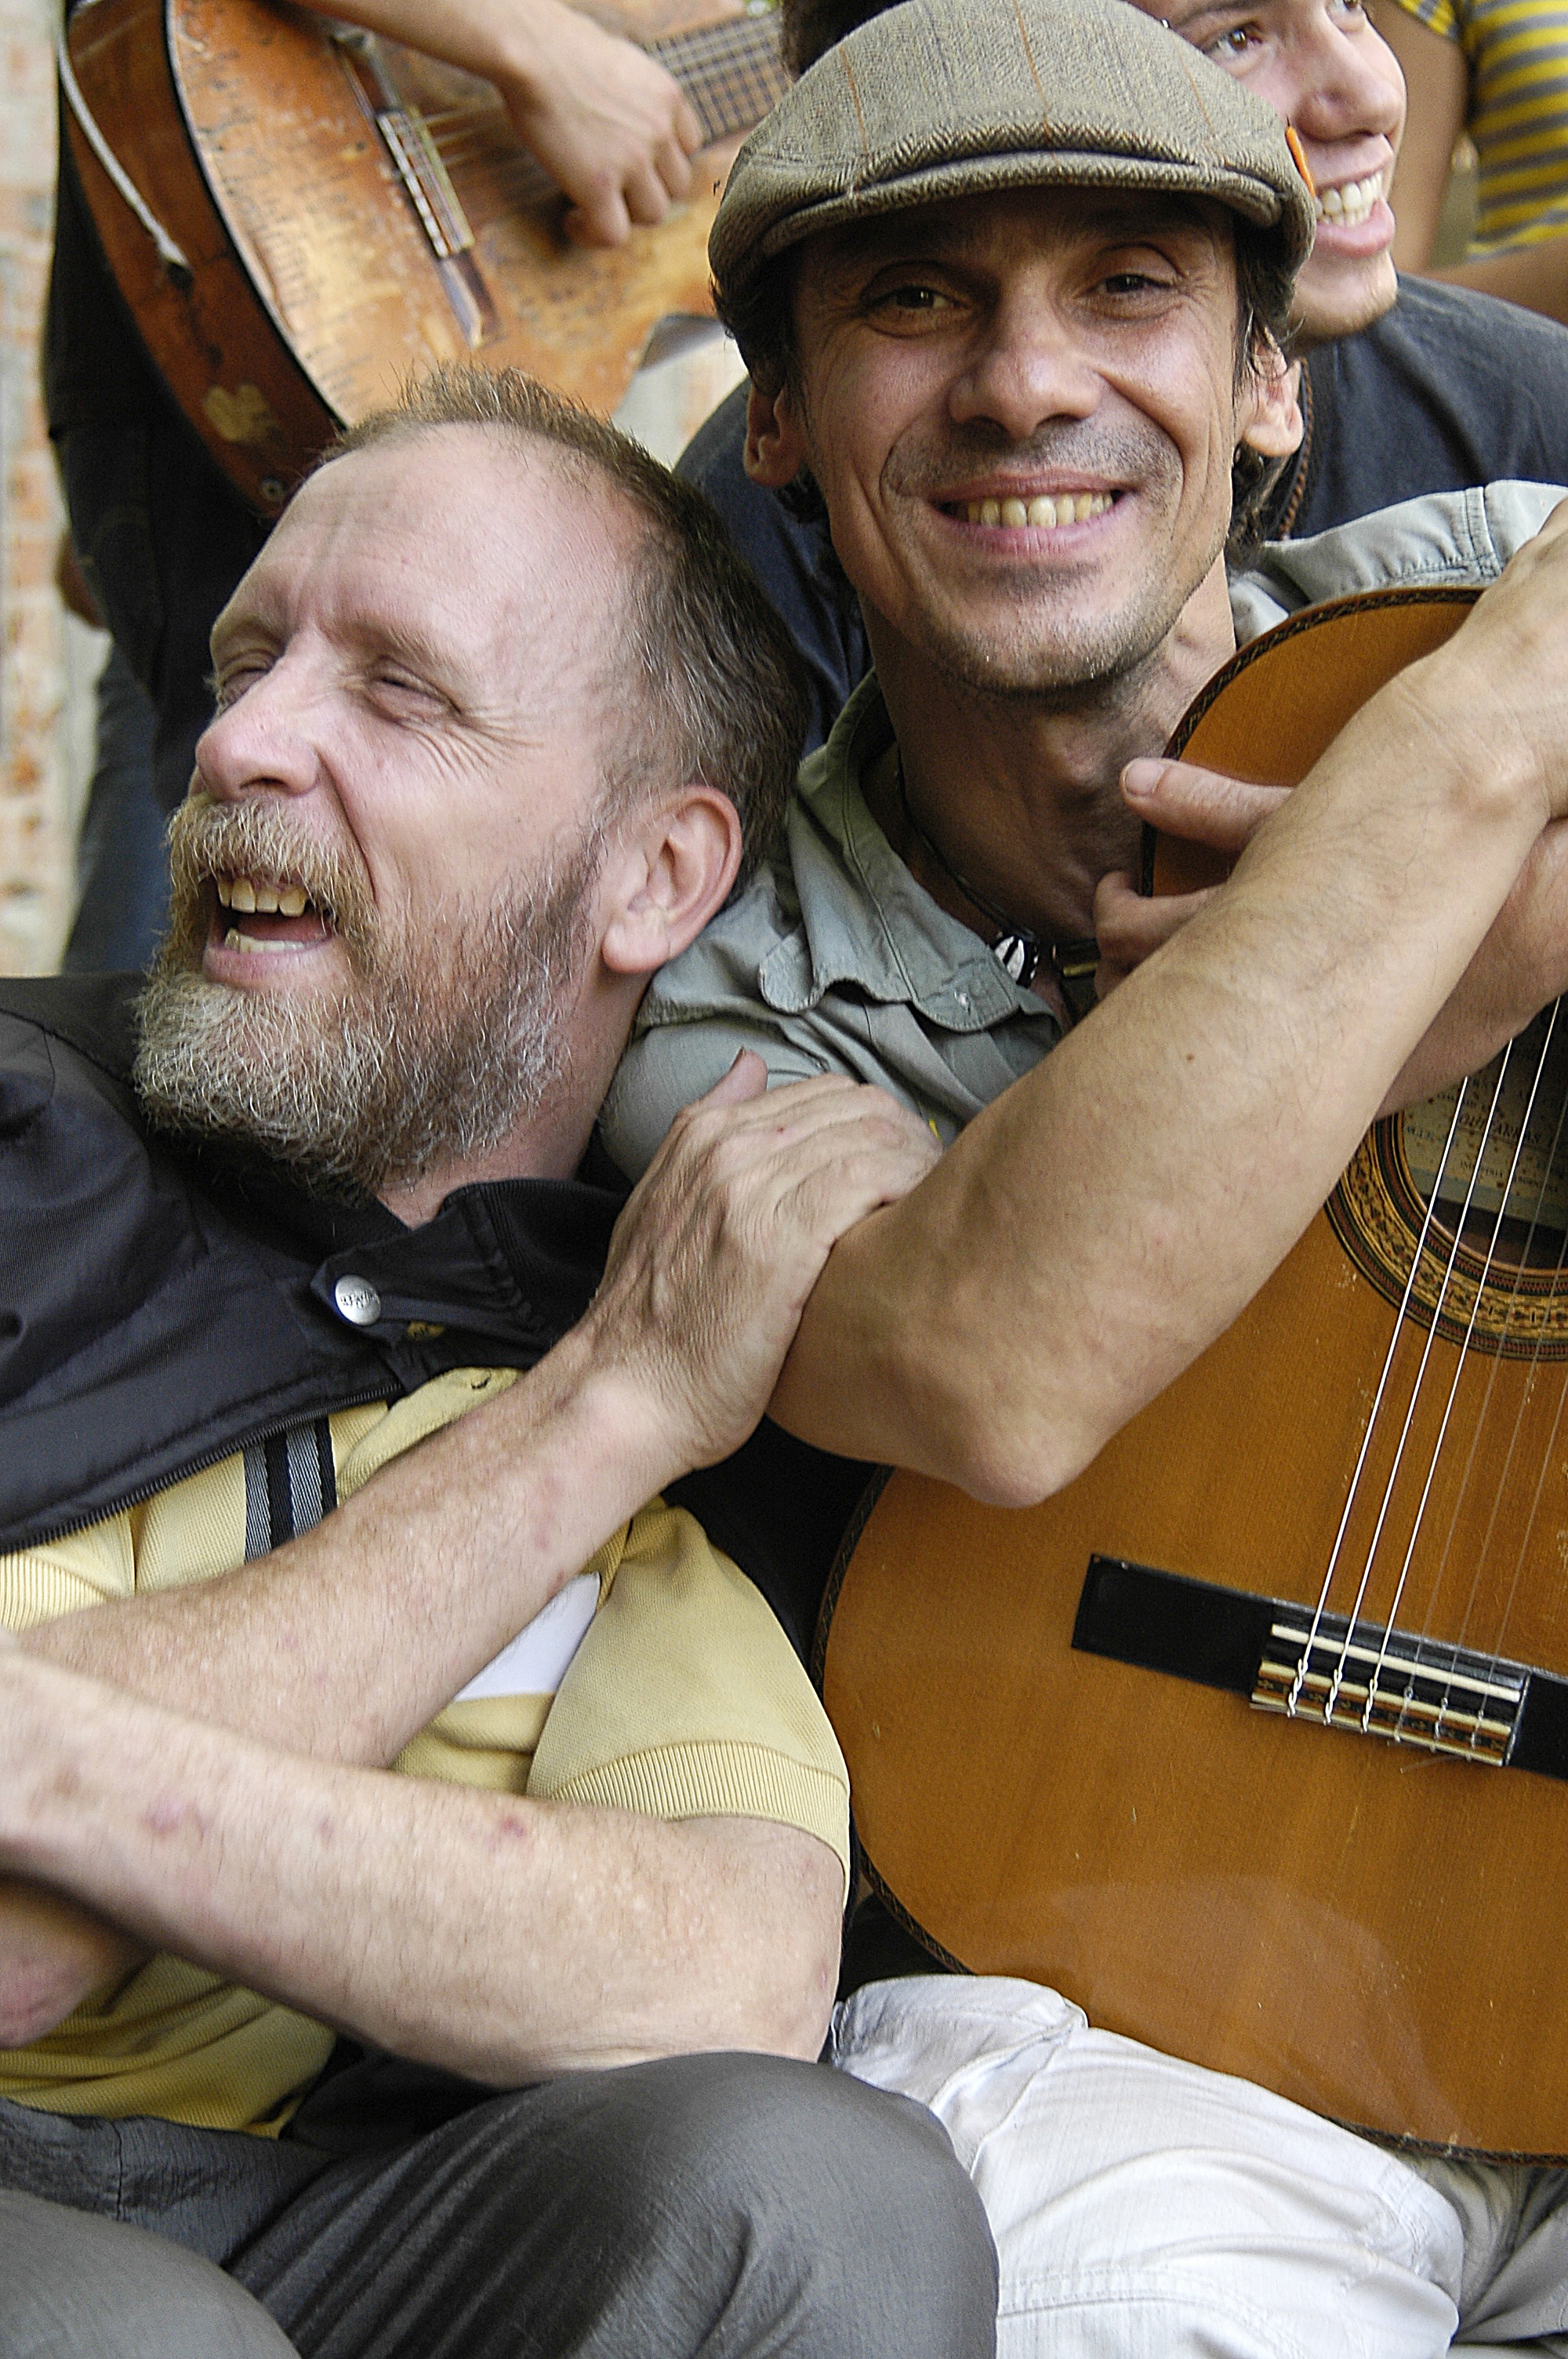 The singer Manu Chao has been working with La Colifata since 1991.